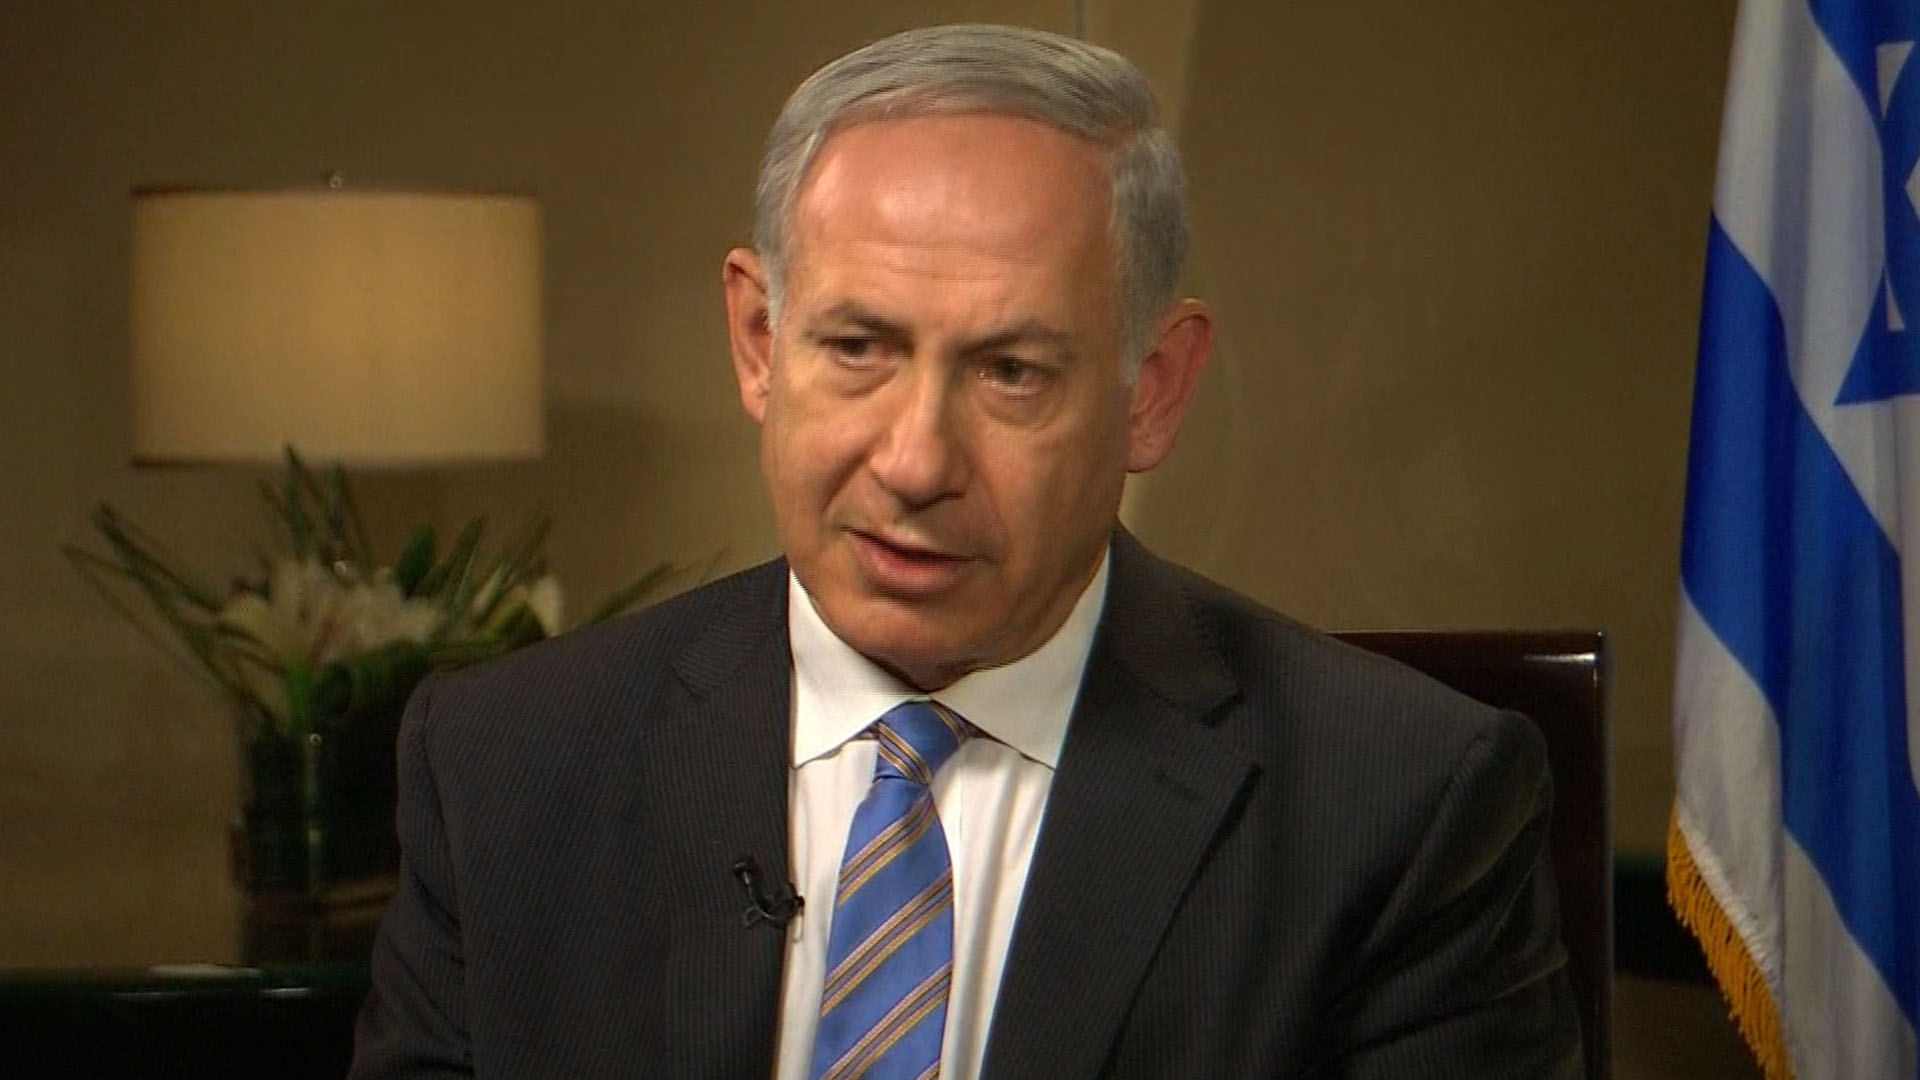 Netanyahu: Partial deal is Syria would be bad